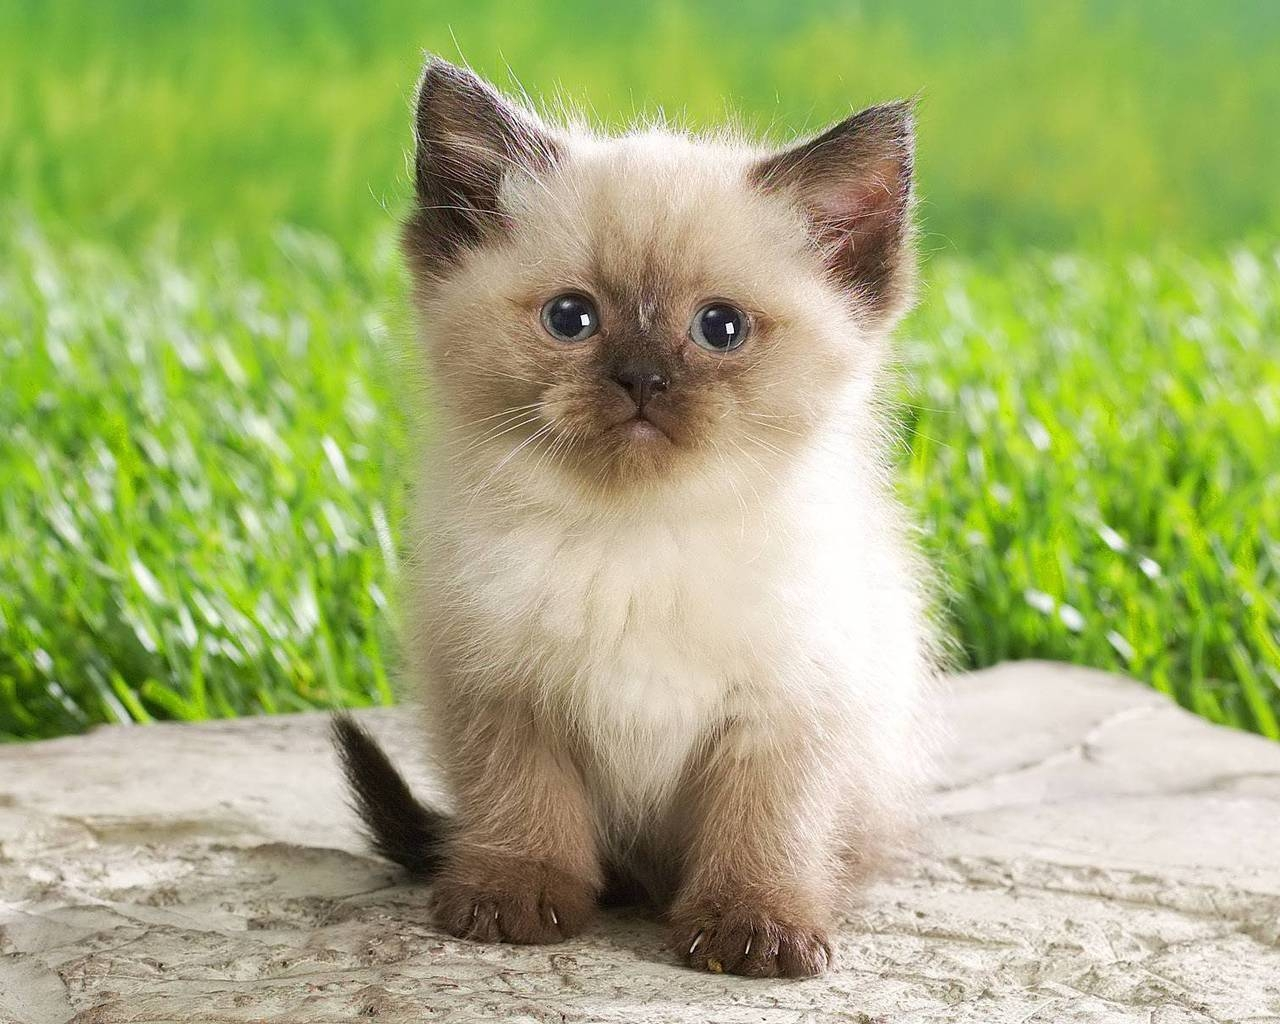 Cute Persian Kitty for 1280 x 1024 resolution